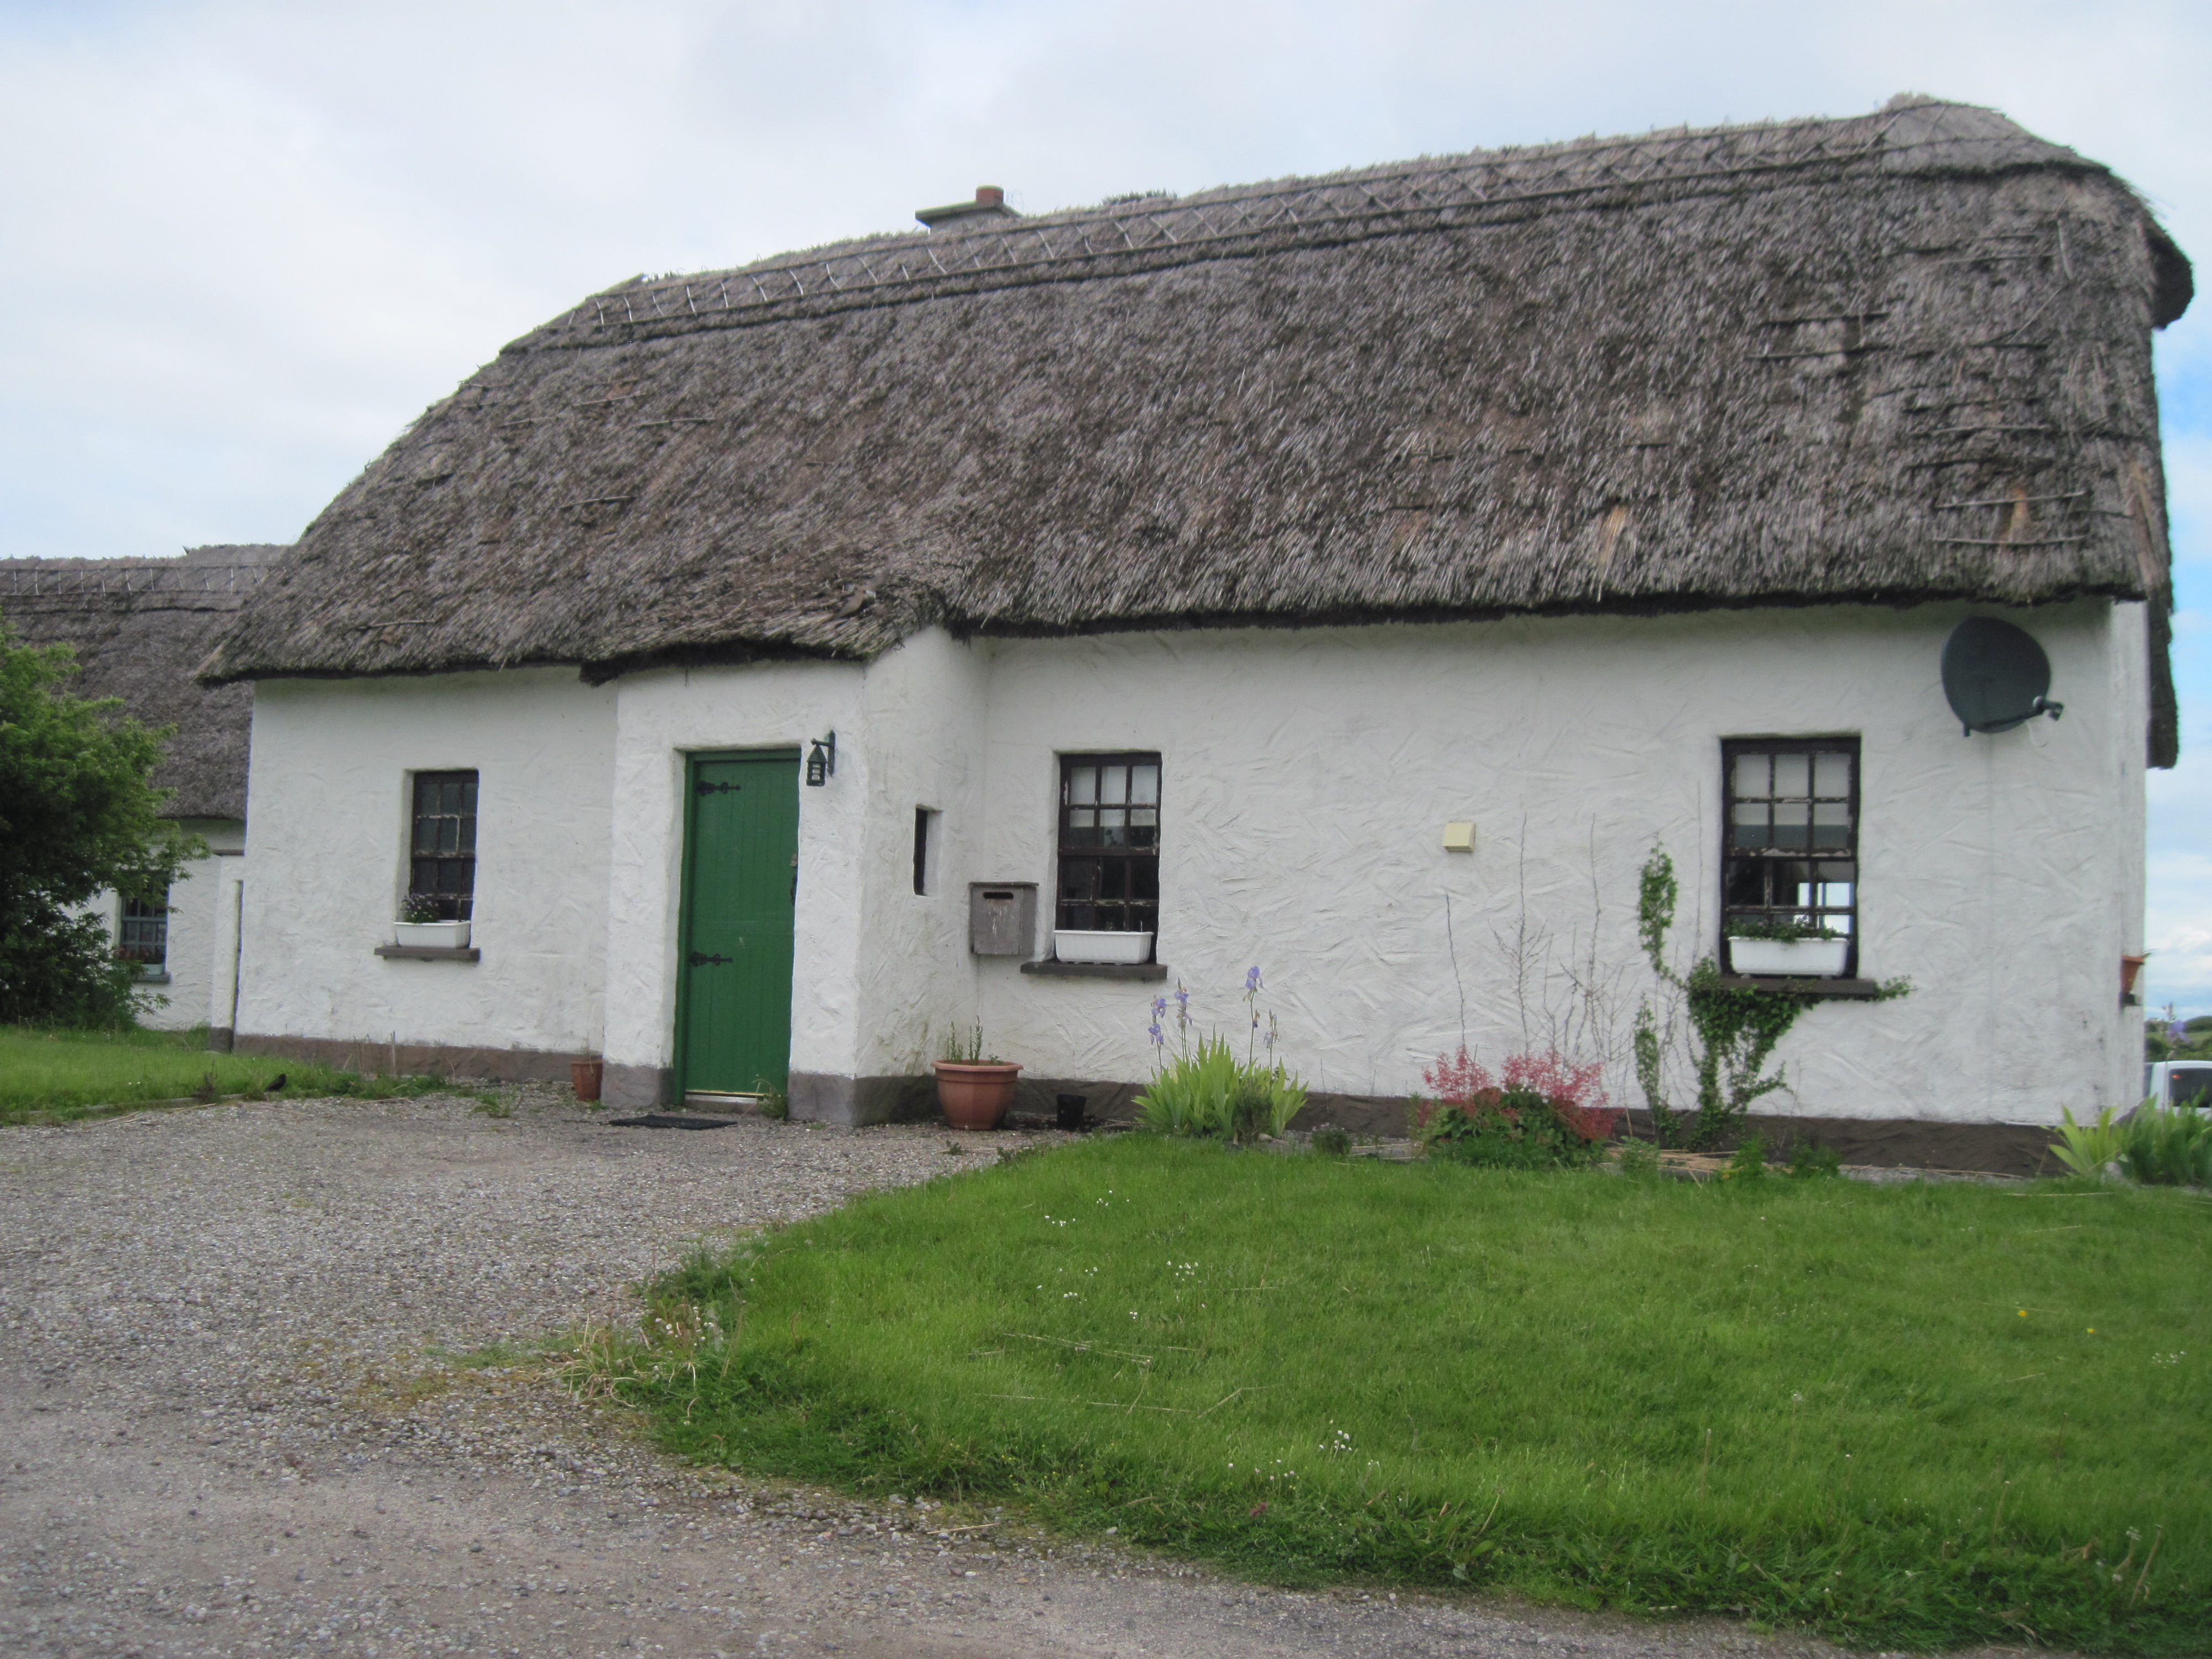 Ireland Thatched roof house 2 near Galway 481.jpg